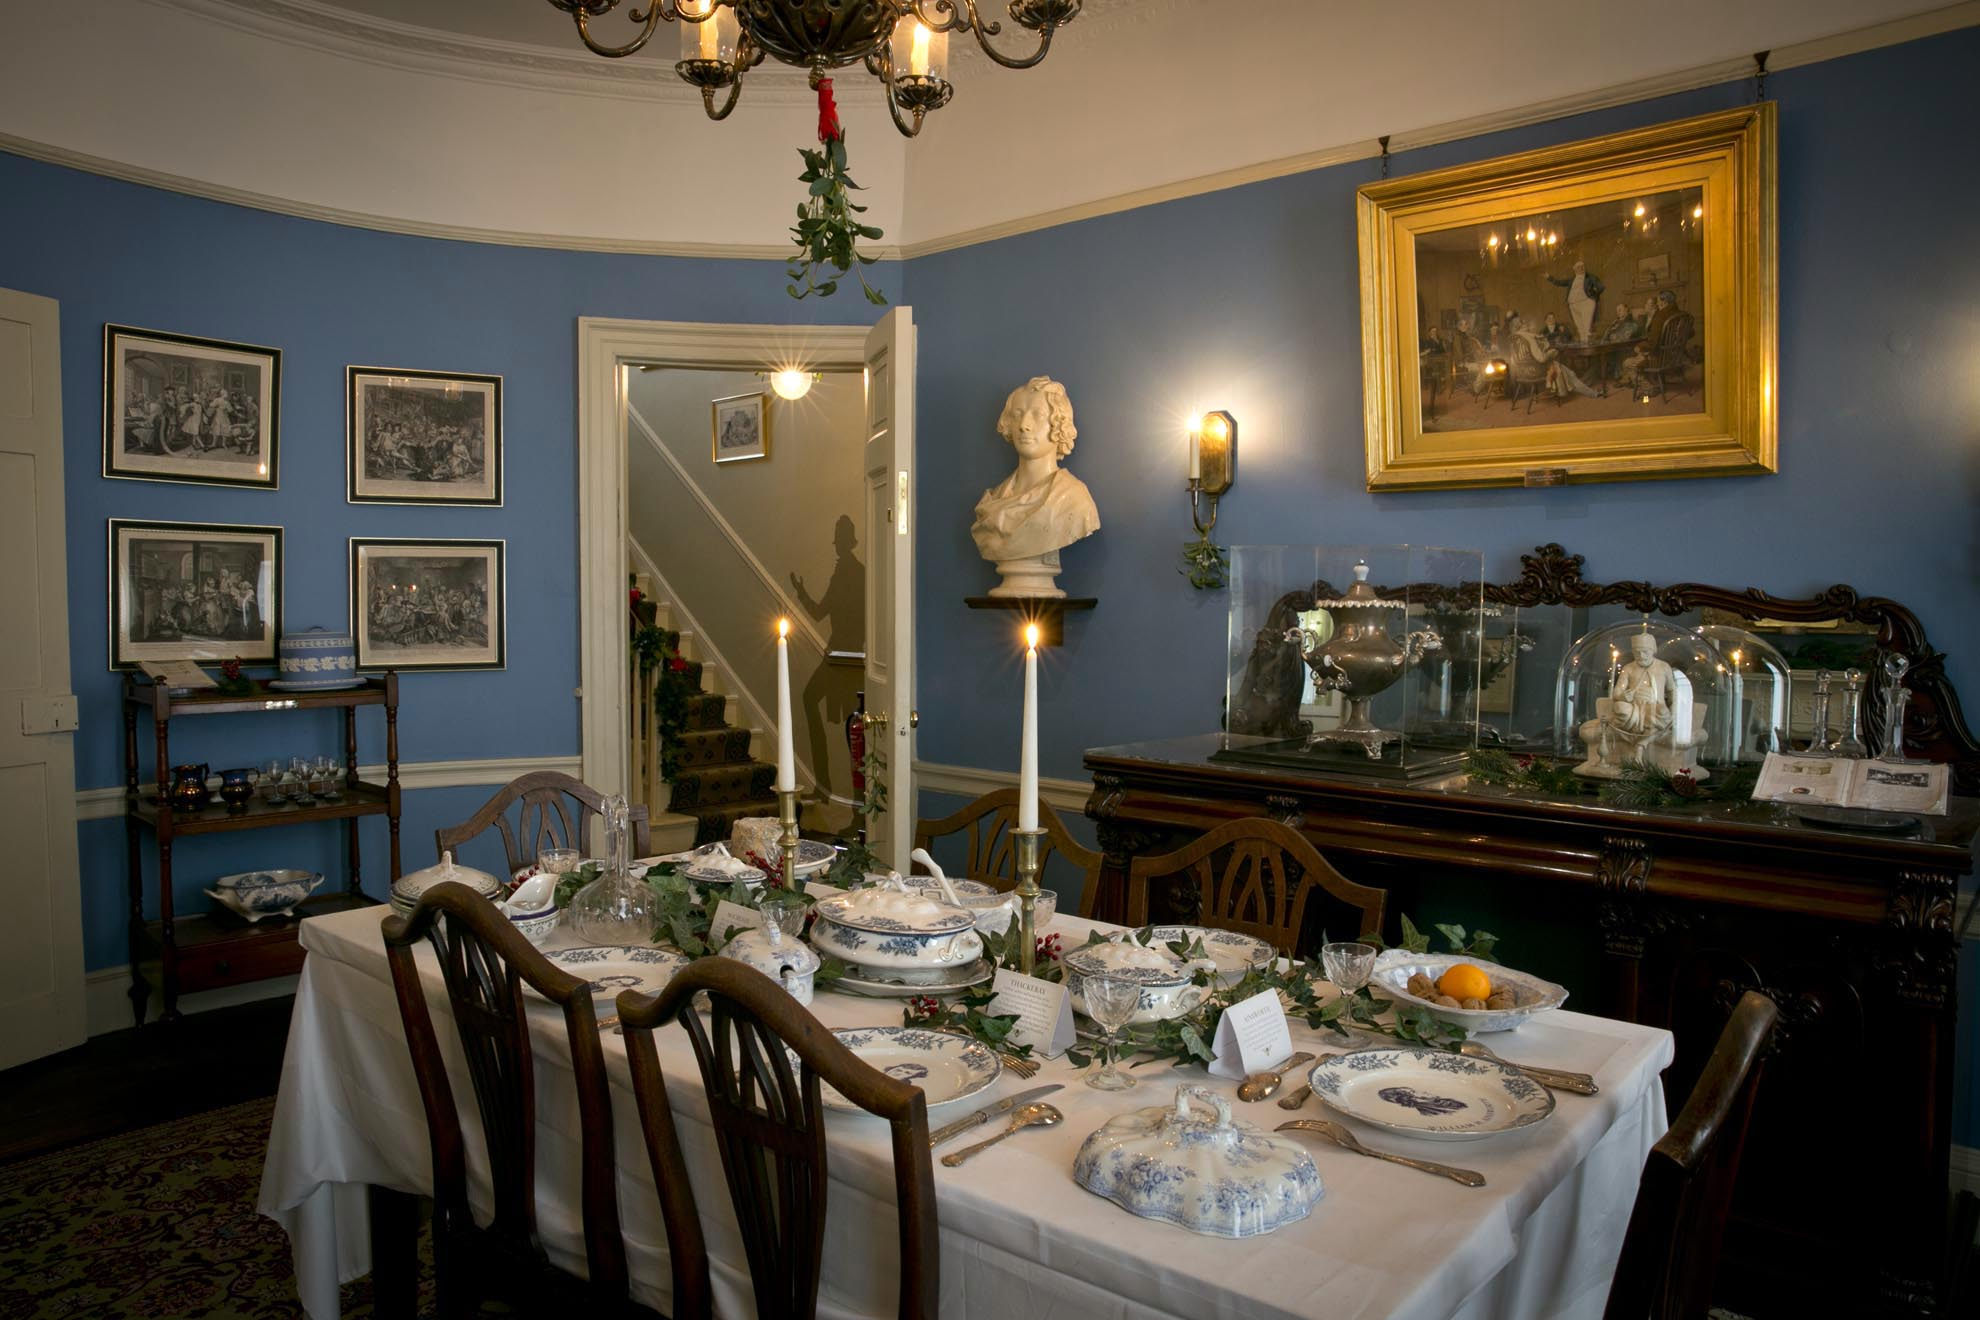 The Dining Room at the Charles Dickens Museum